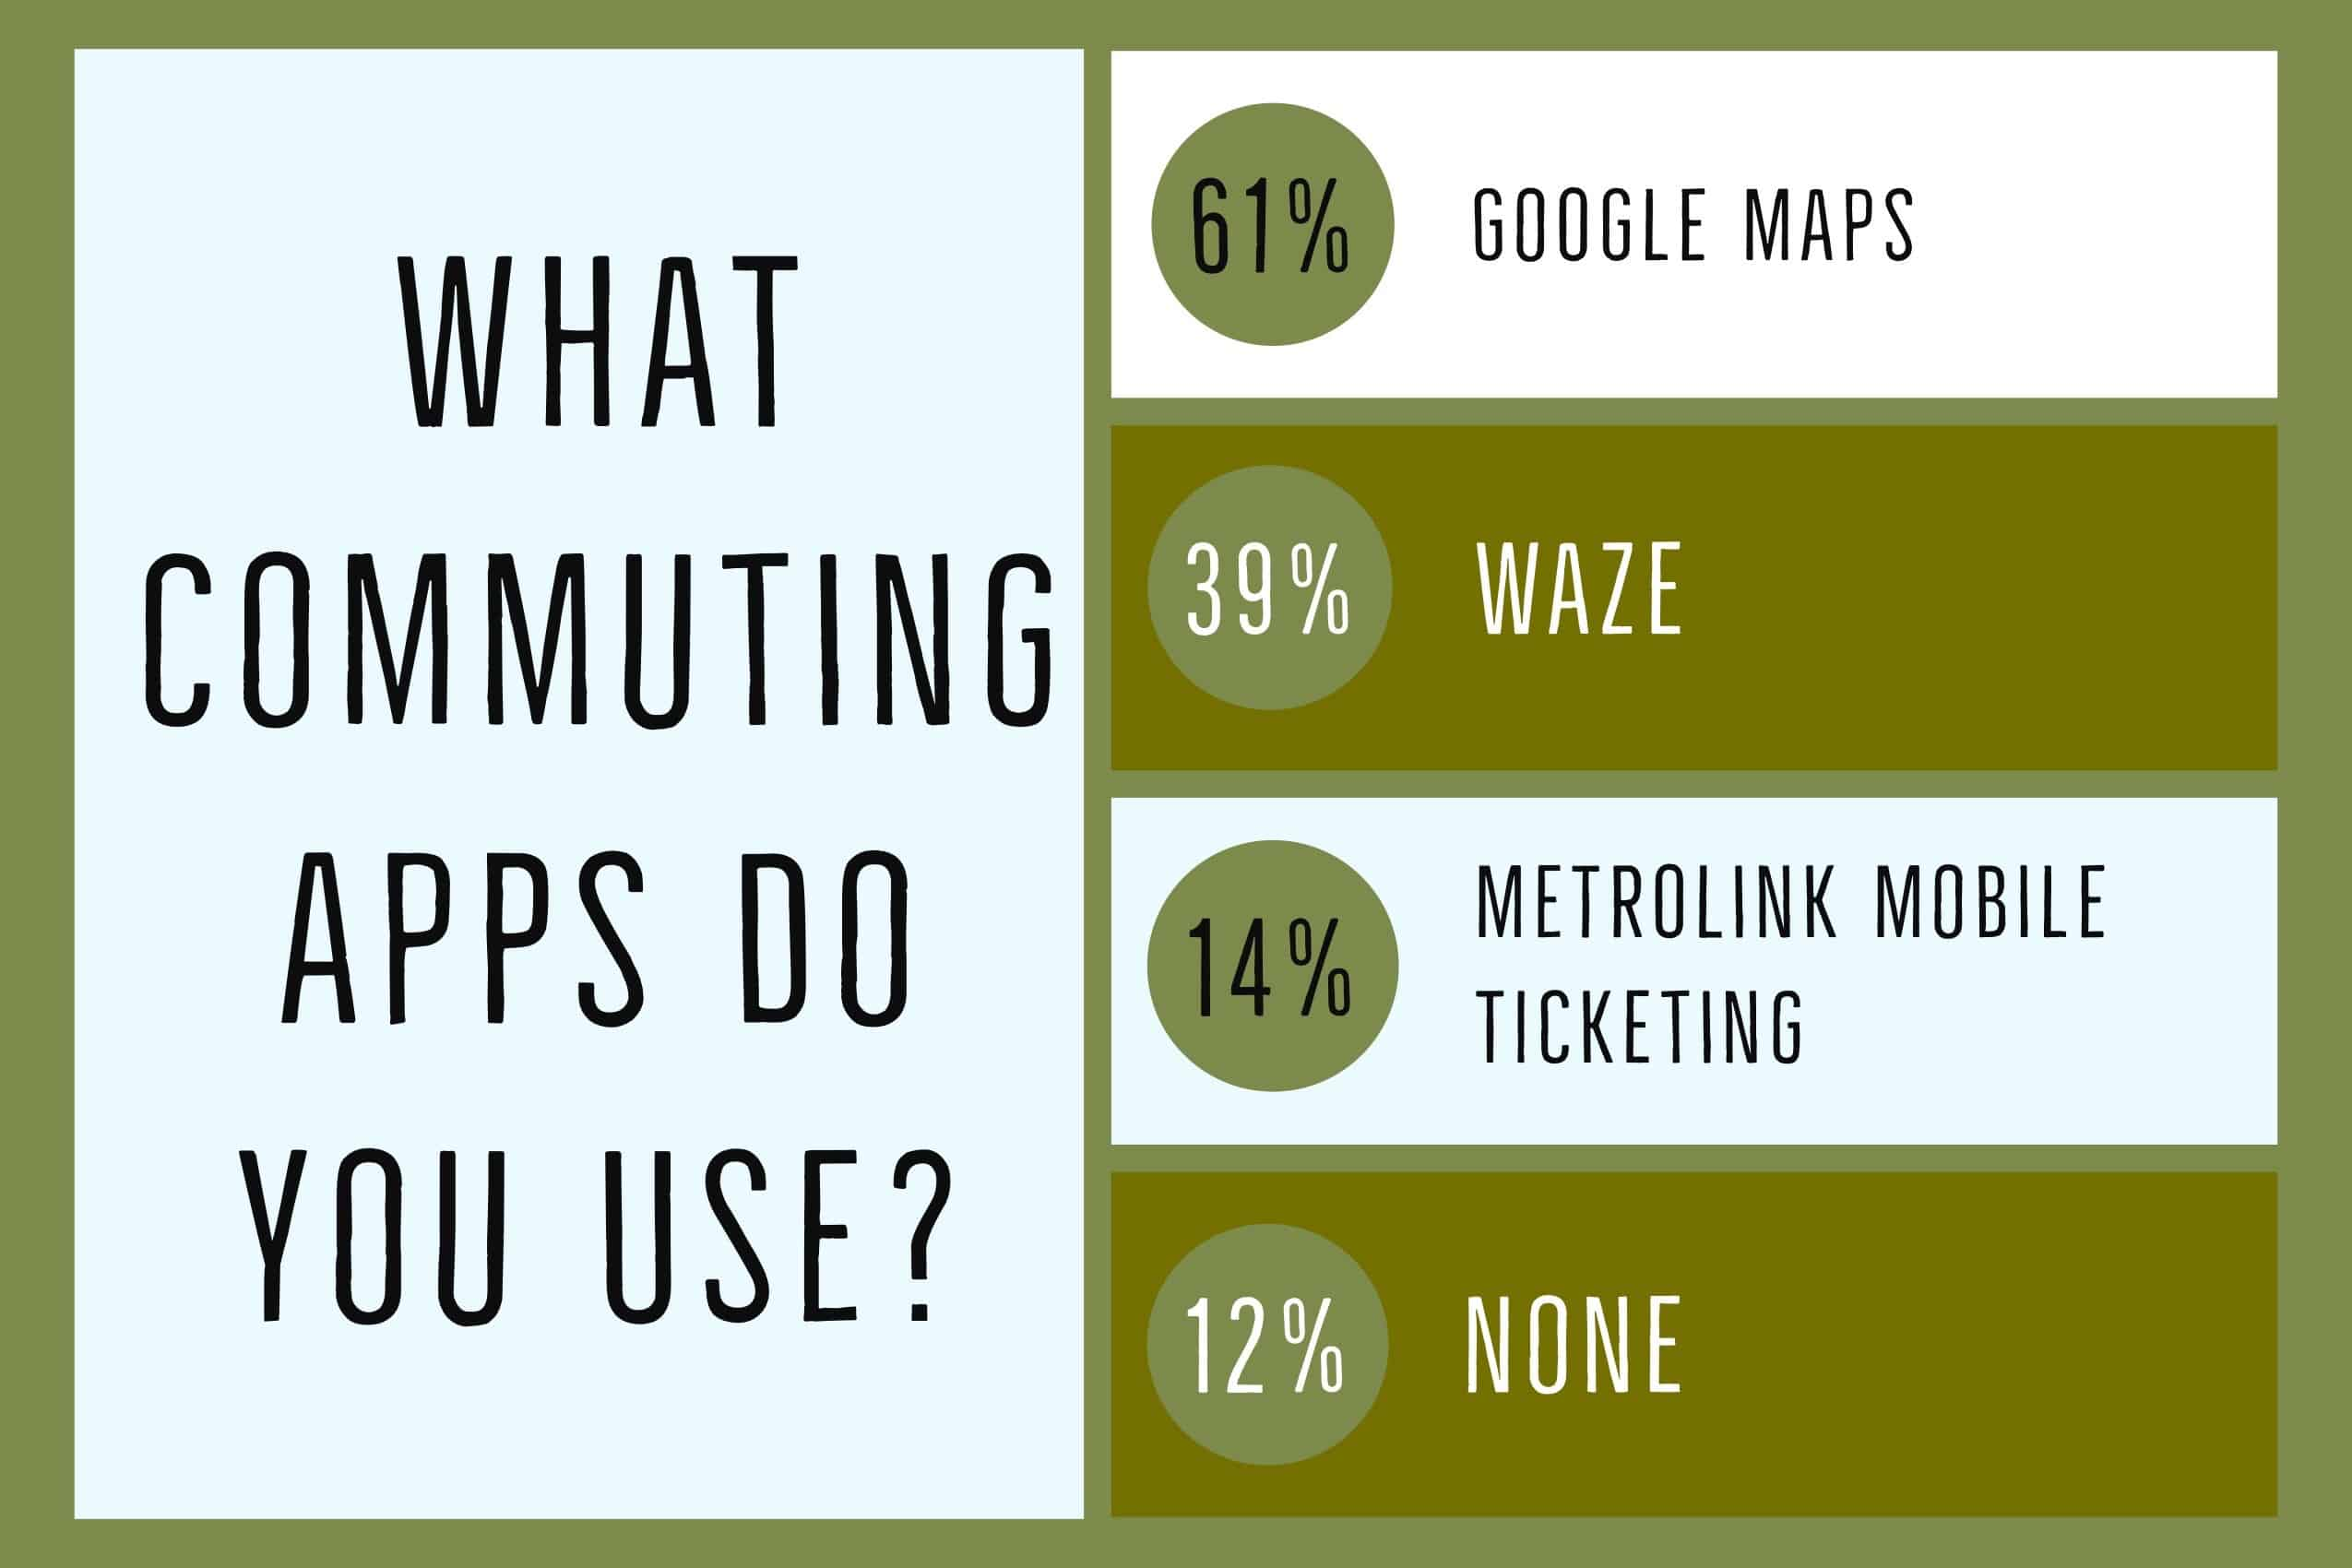 Commuting Apps